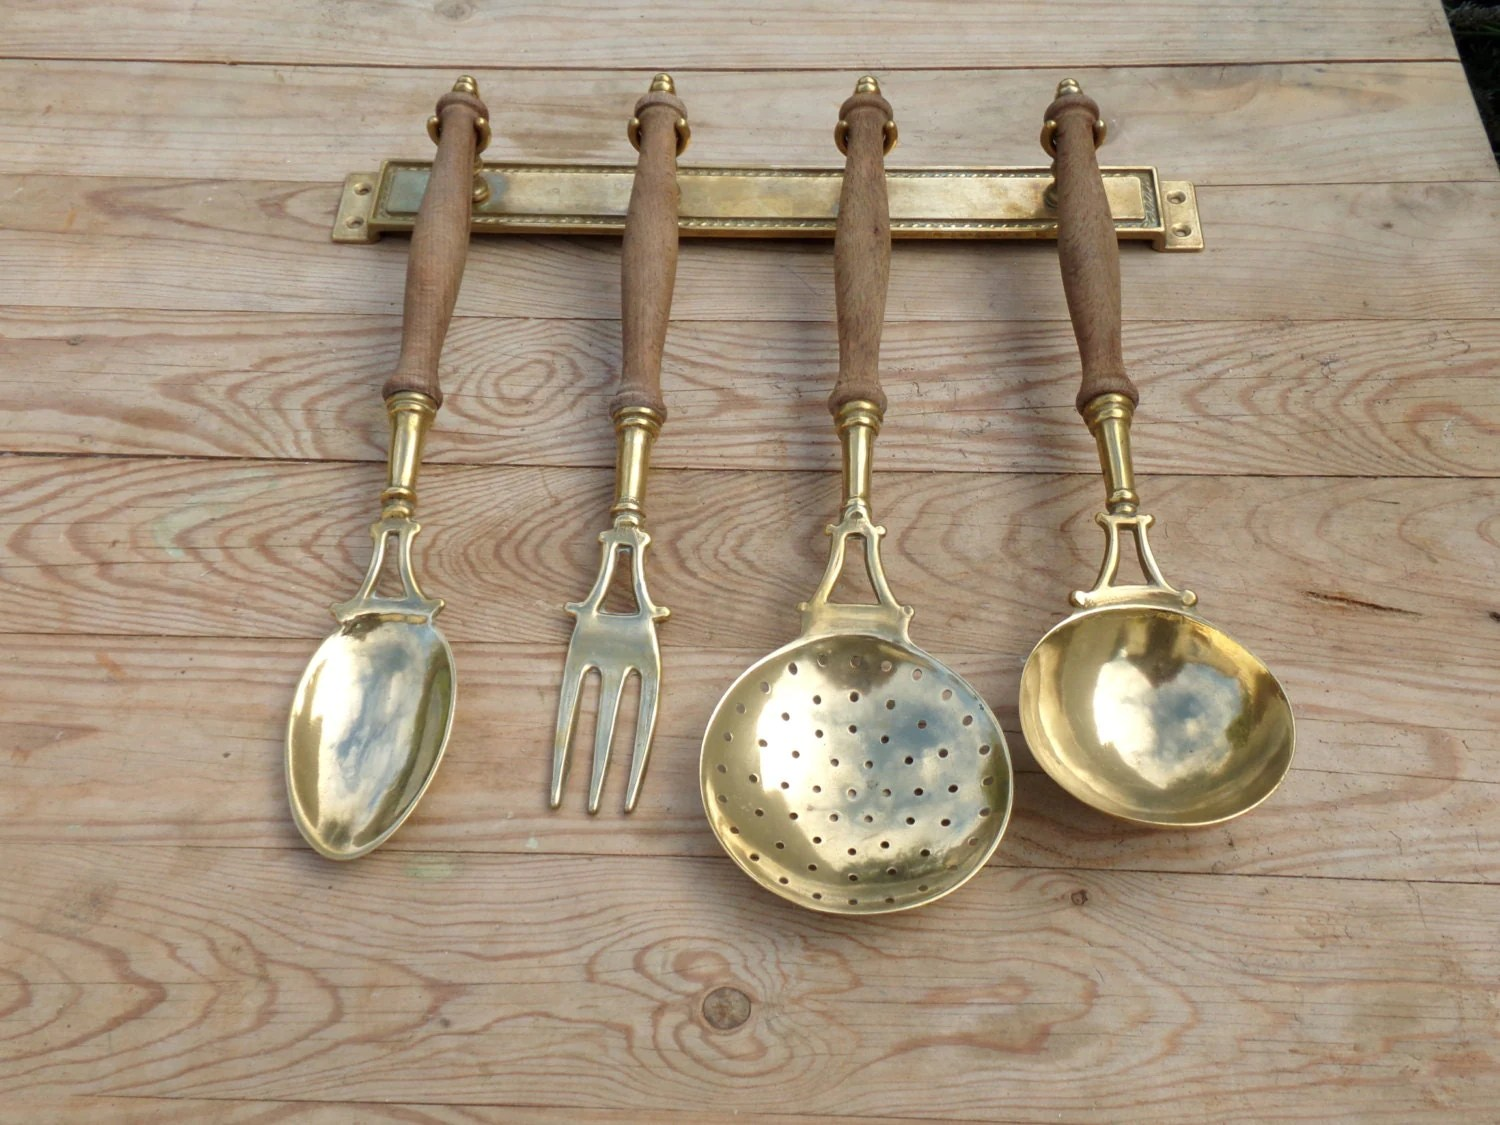 Charming French vintage kitchen utensil set and